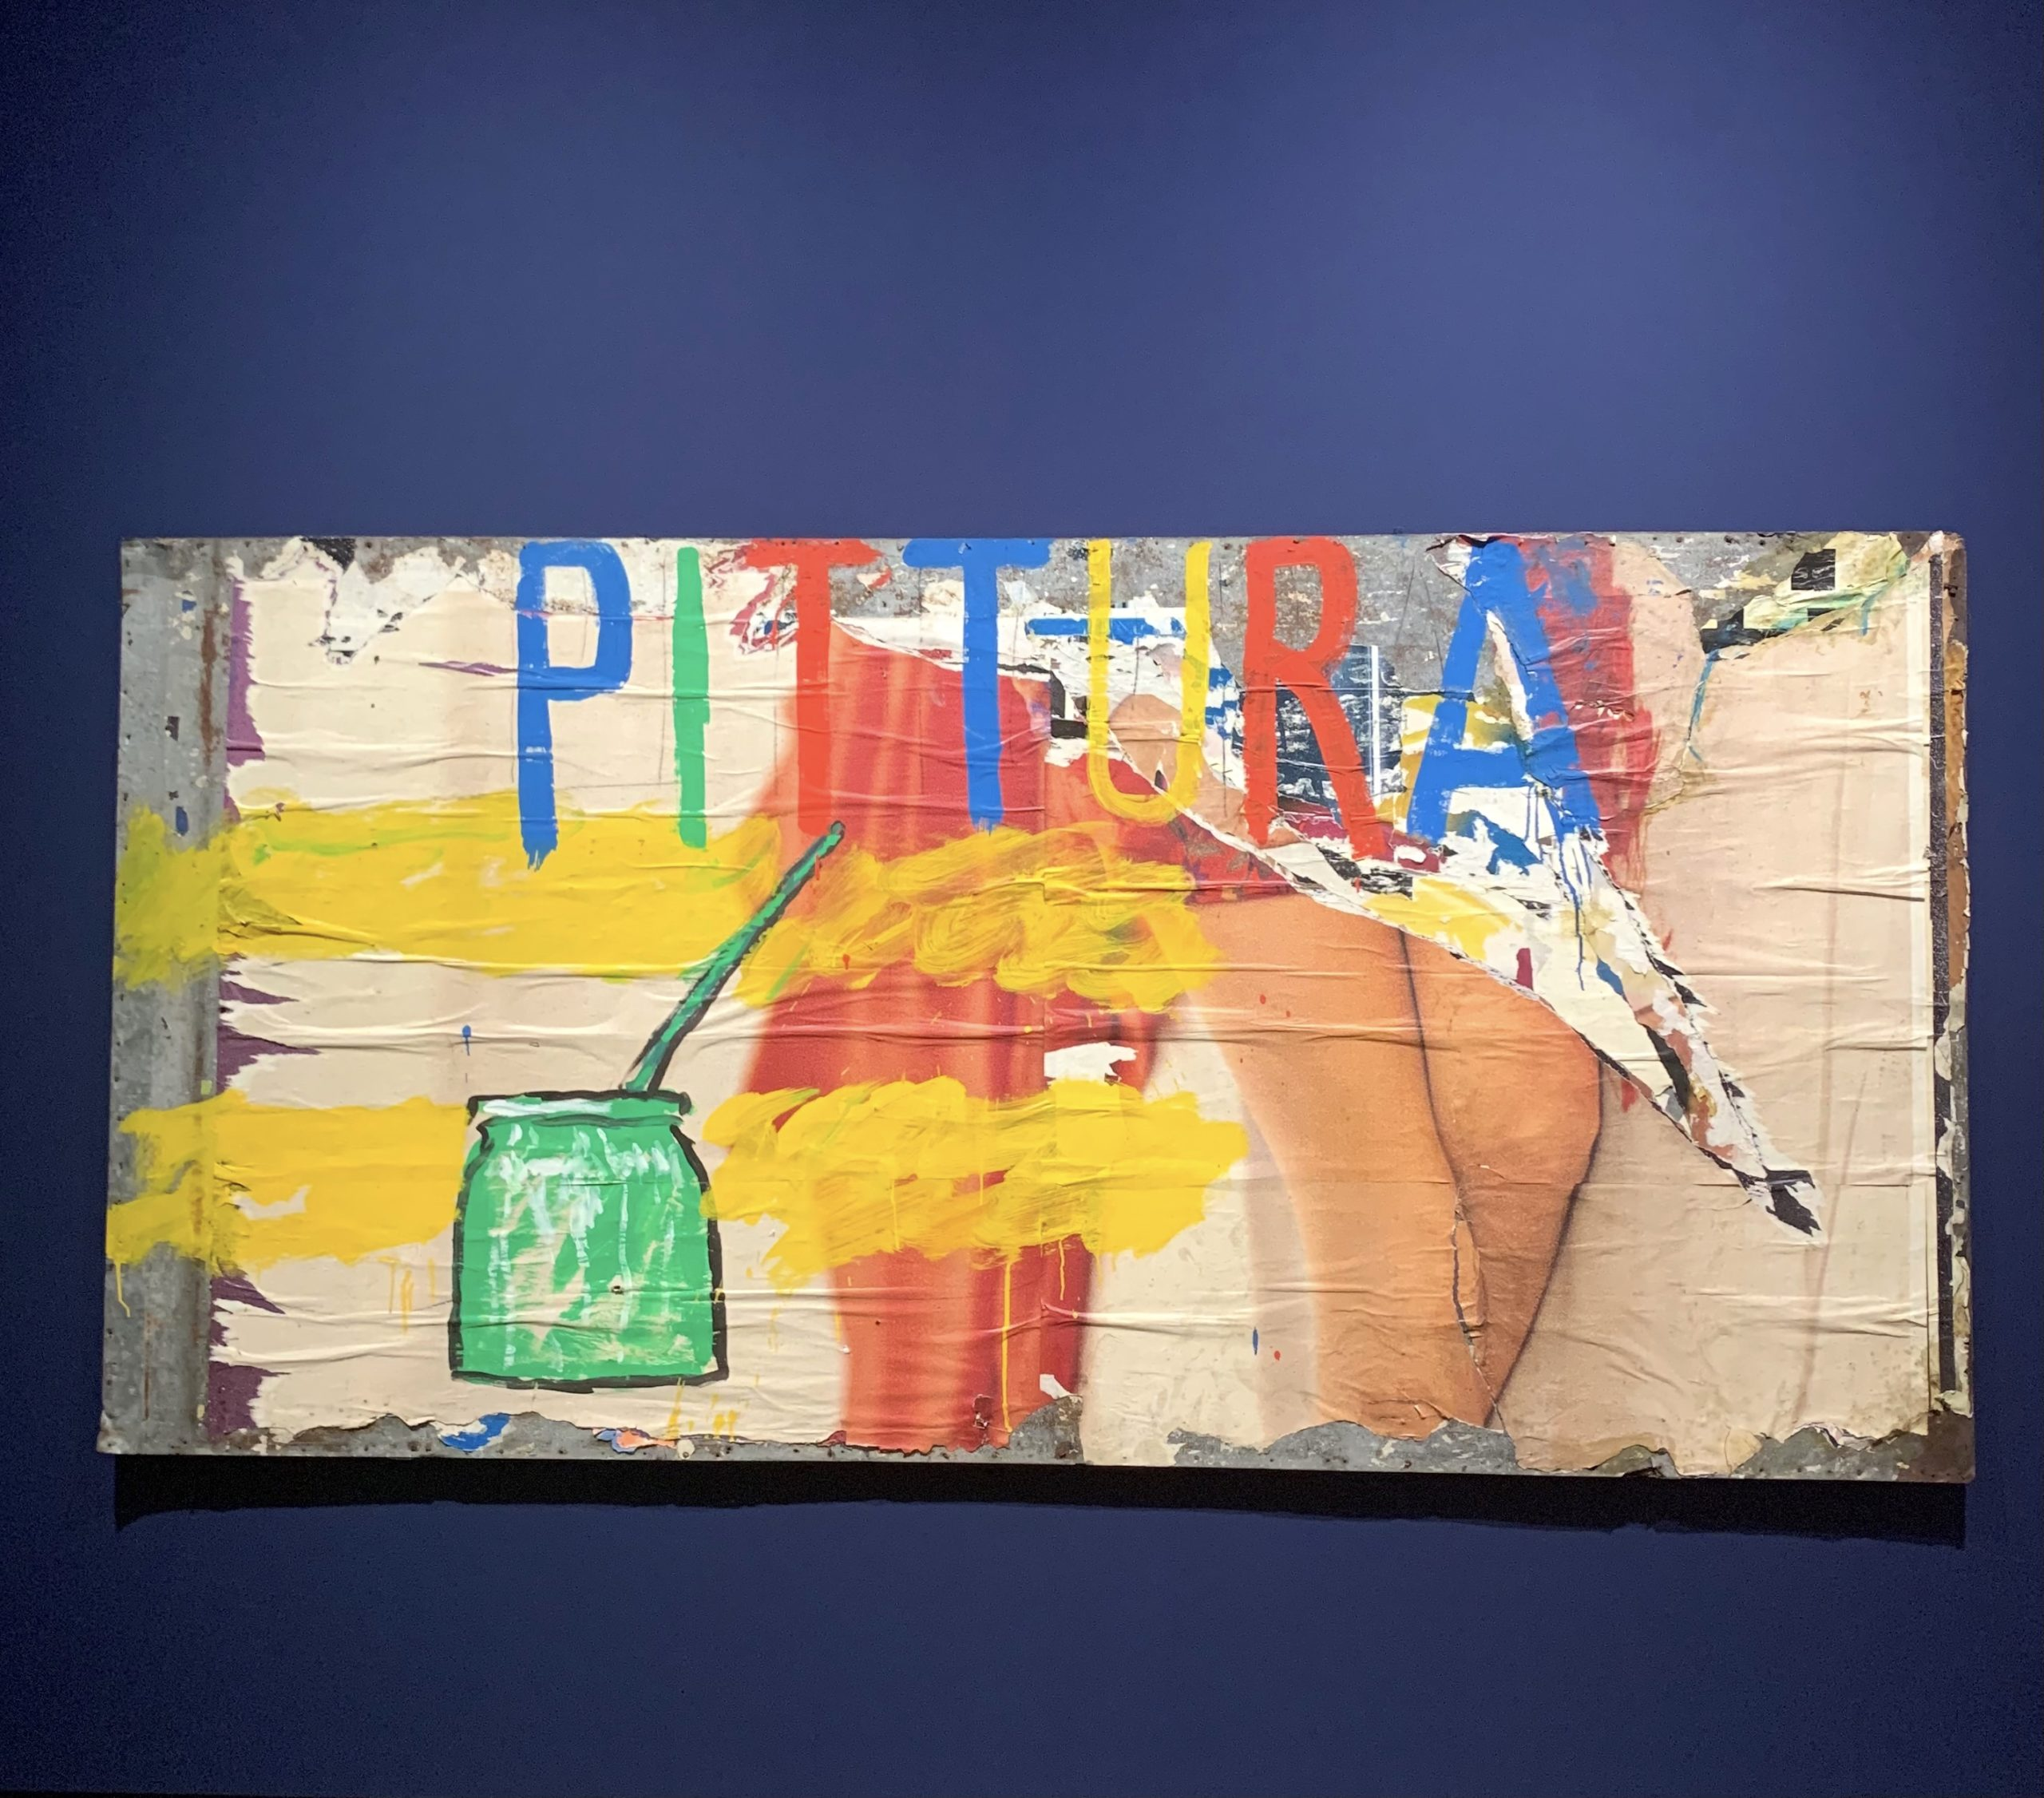 Painting is back, la pittura anni 80 in mostra